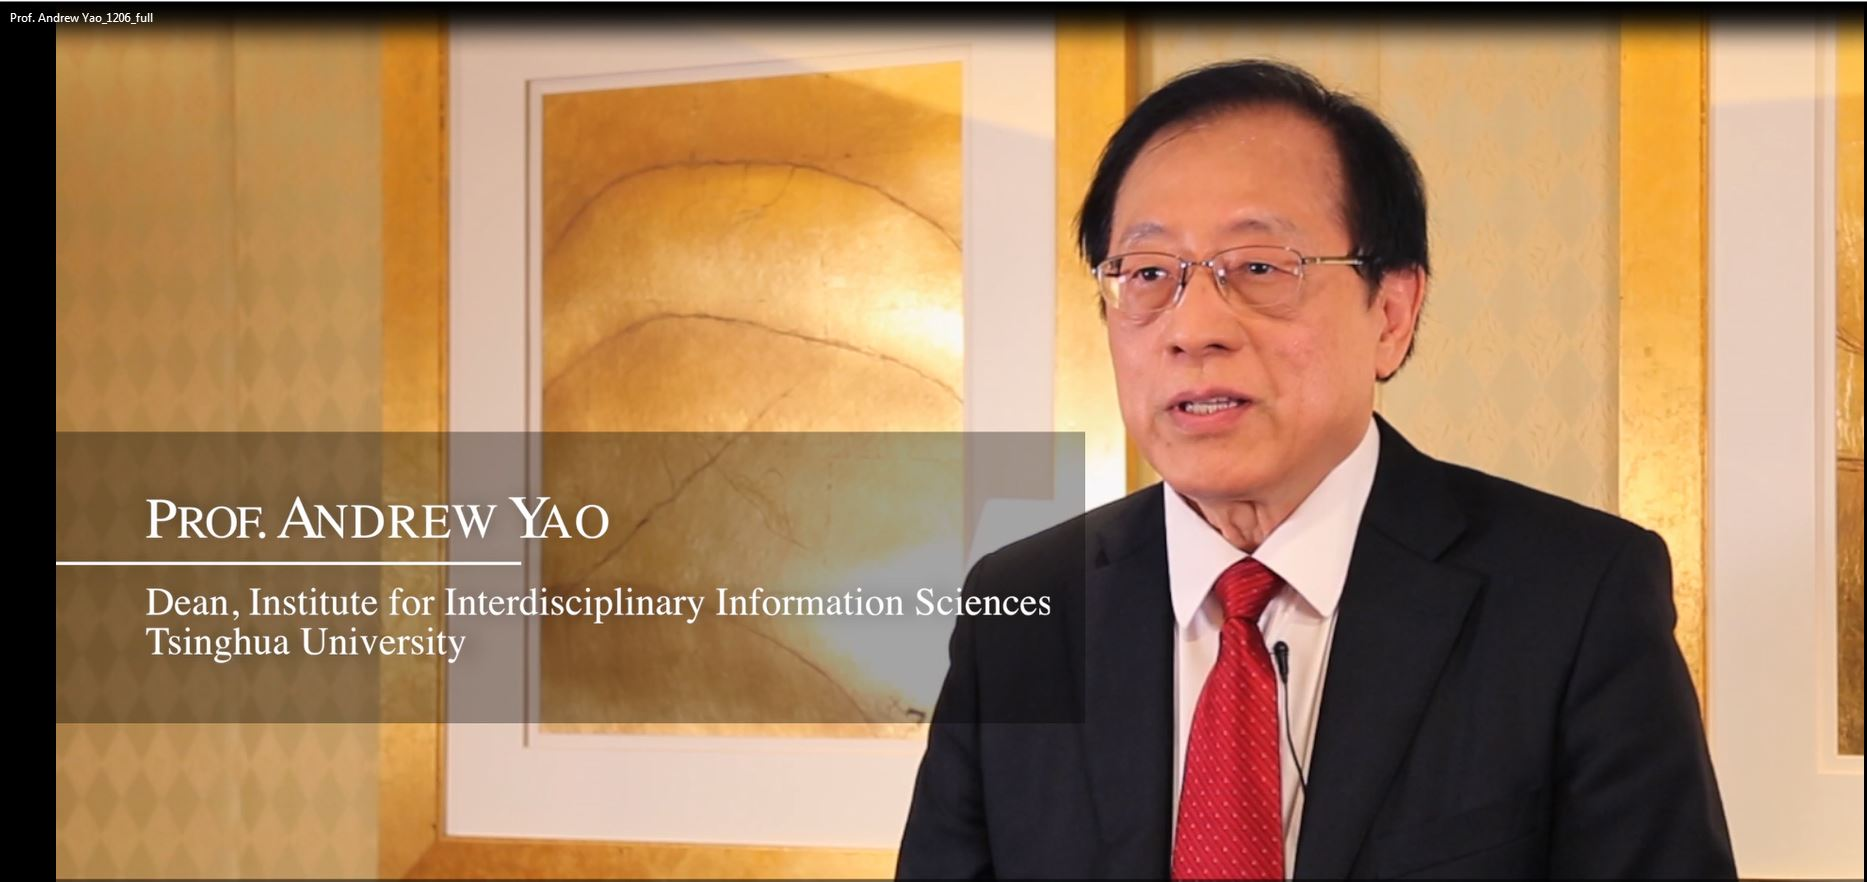 Interview with Prof. Andrew Yao, a member of the Prize Recommendation Committee of the LUI Che Woo Prize